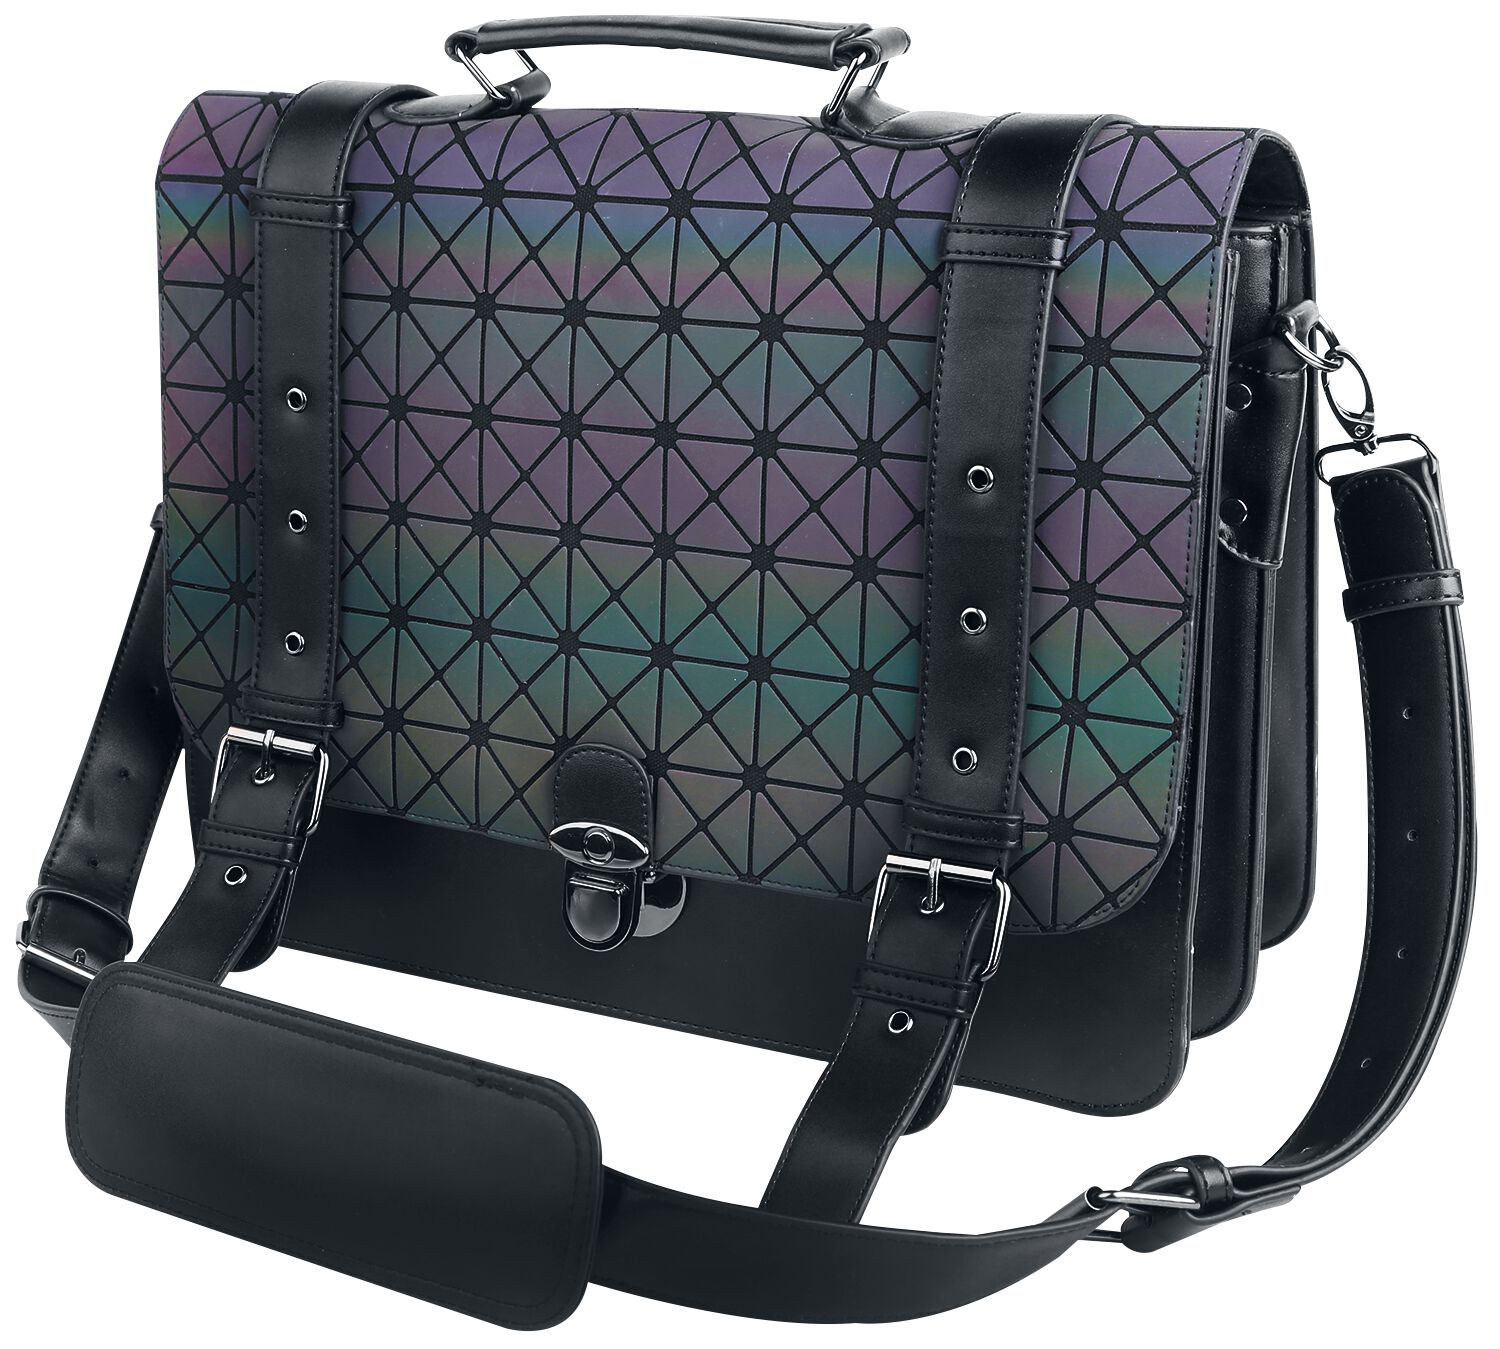 db519280126 Shoulder Bag. 1 Review. More from Banned Alternative